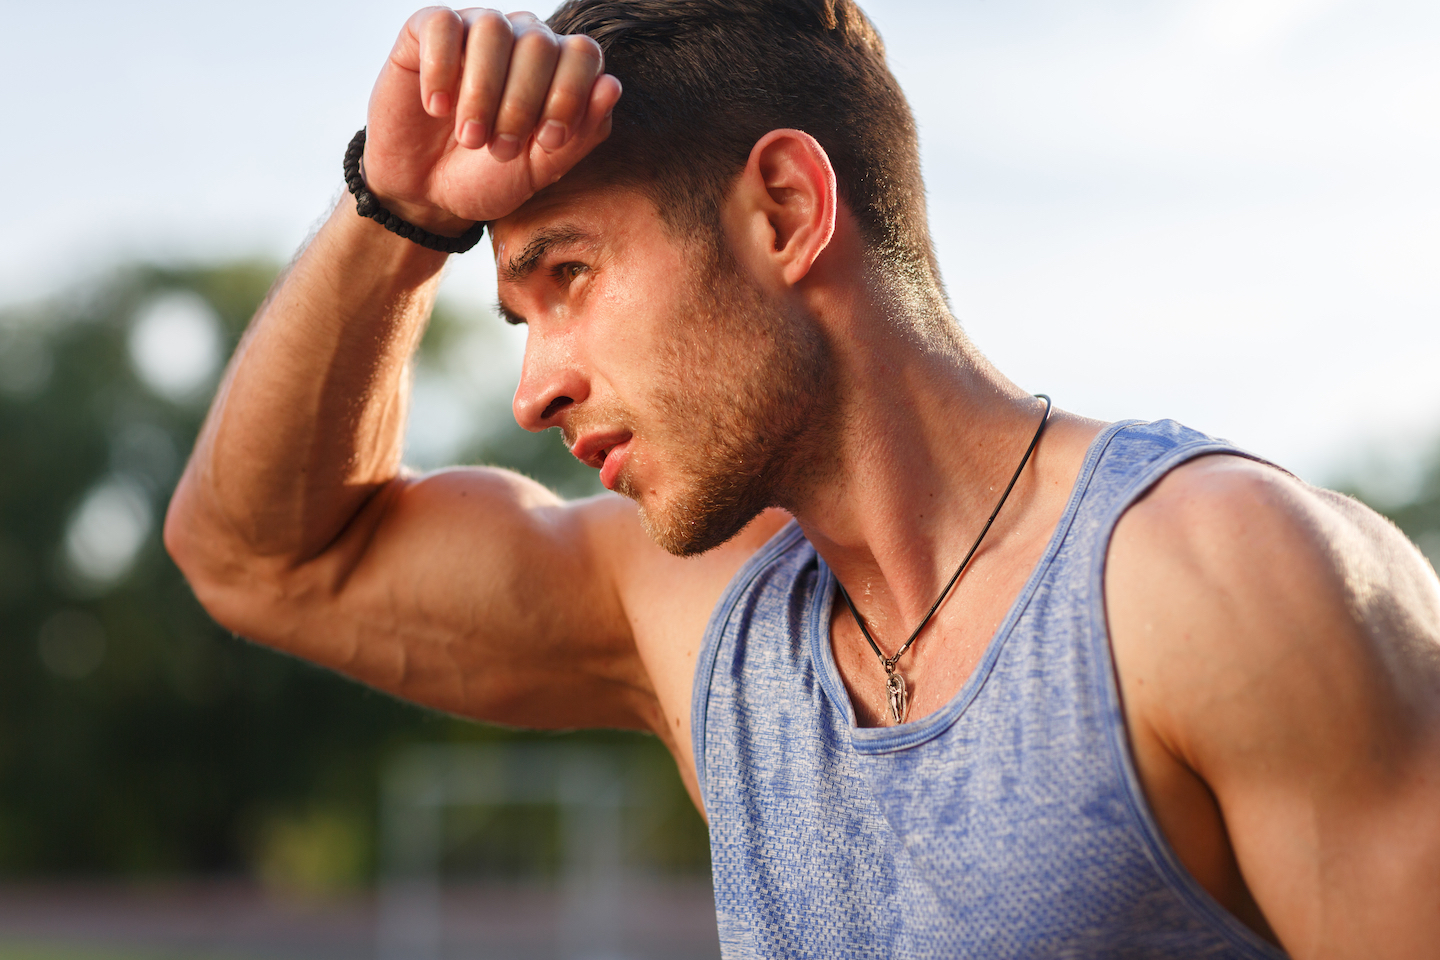 A new study performed by researchers at the Harvard T.H Chan School of Public Health shows how much heat waves affect cognitive function.